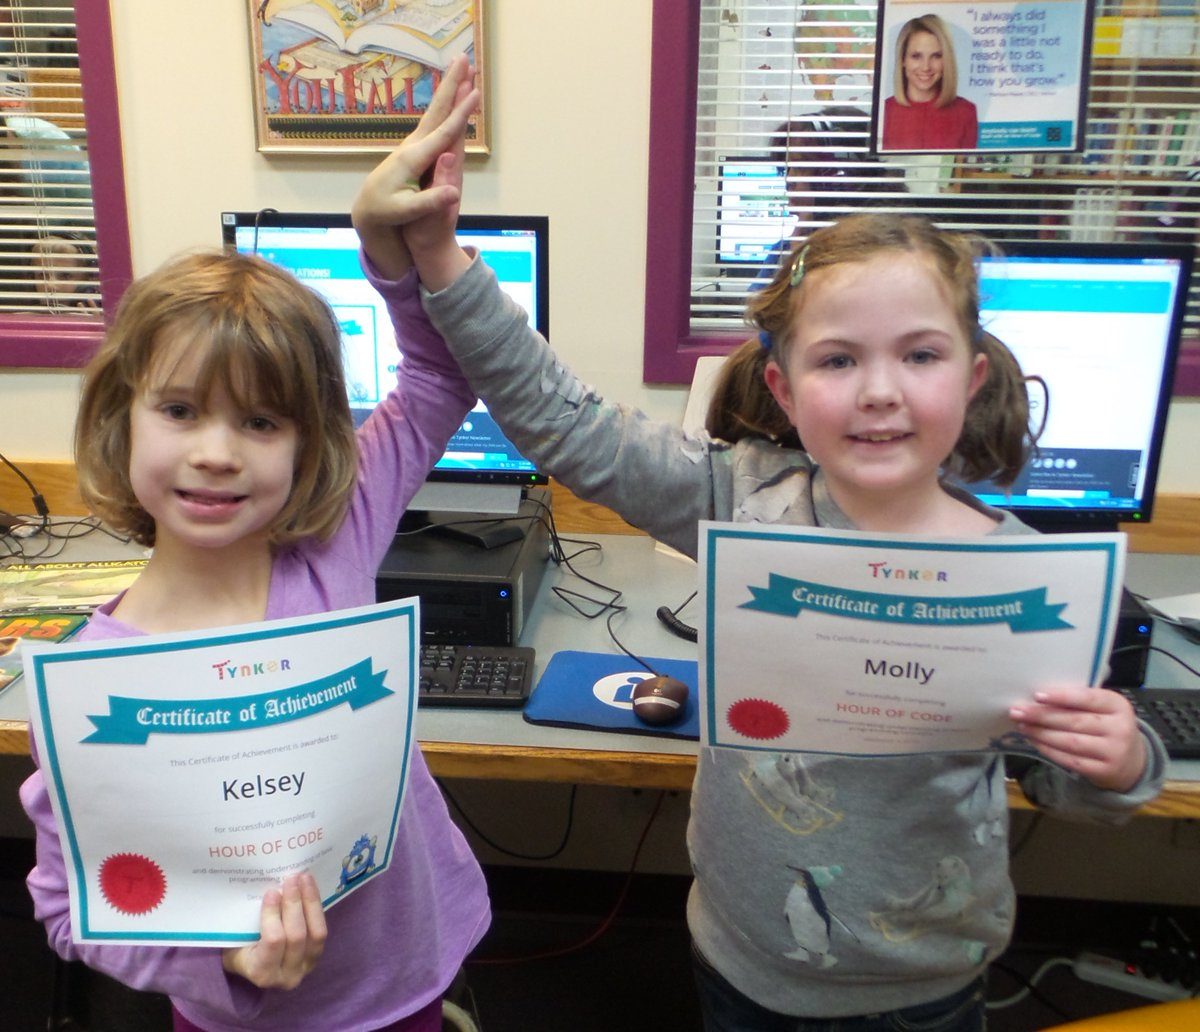 "2nd graders at @OrchardVT give high 5 for completing @gotynker ""Puppy Adventure"" for their #HourOfCode. #VTed https://t.co/B4jJ6vQXyk"